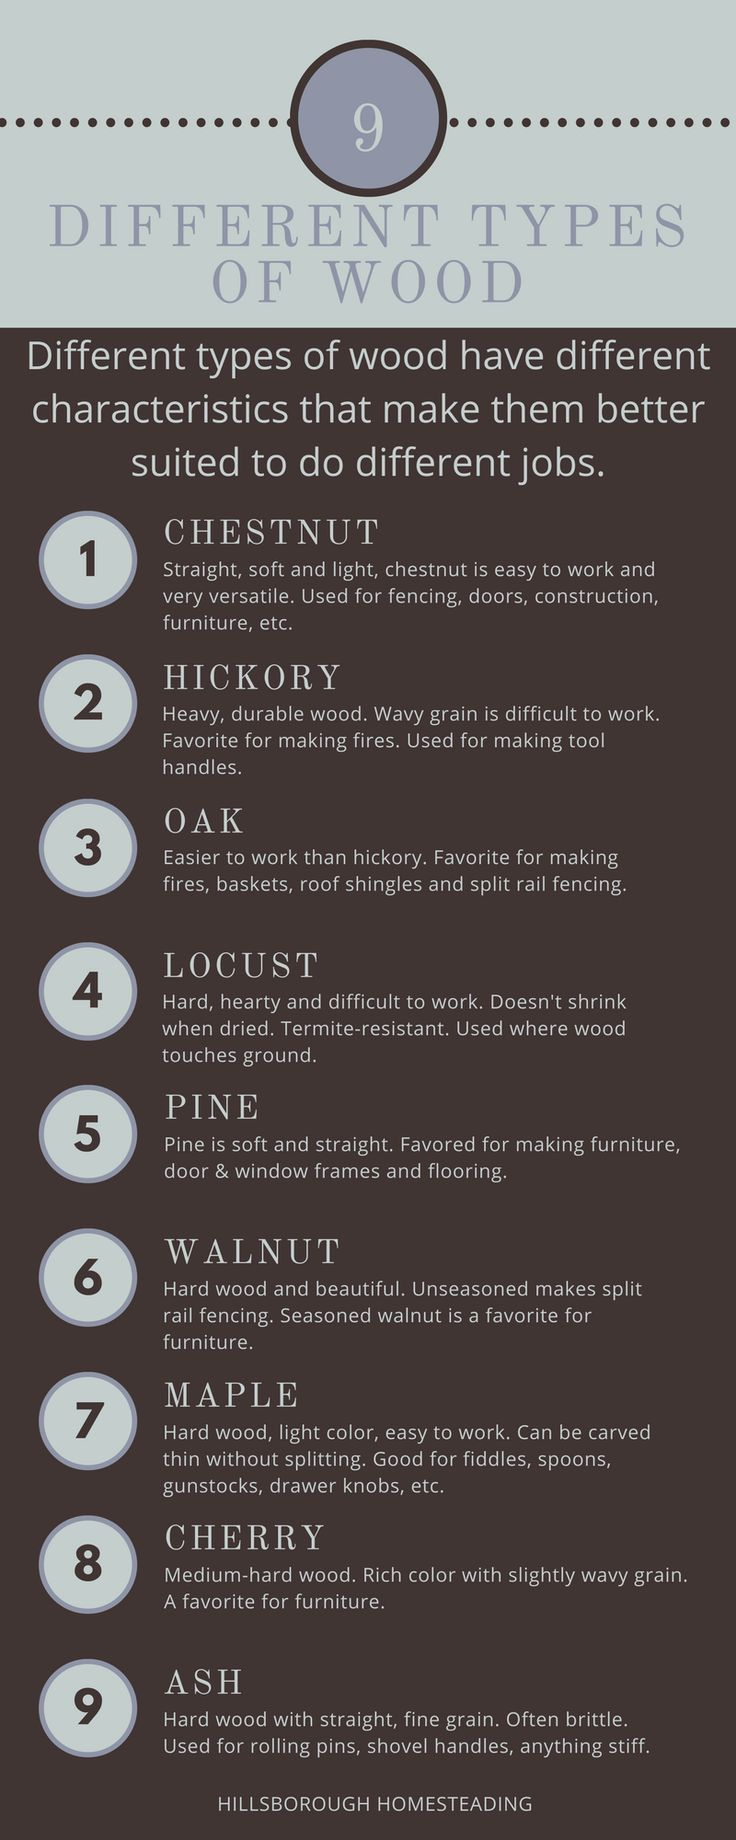 different types of wood infographic